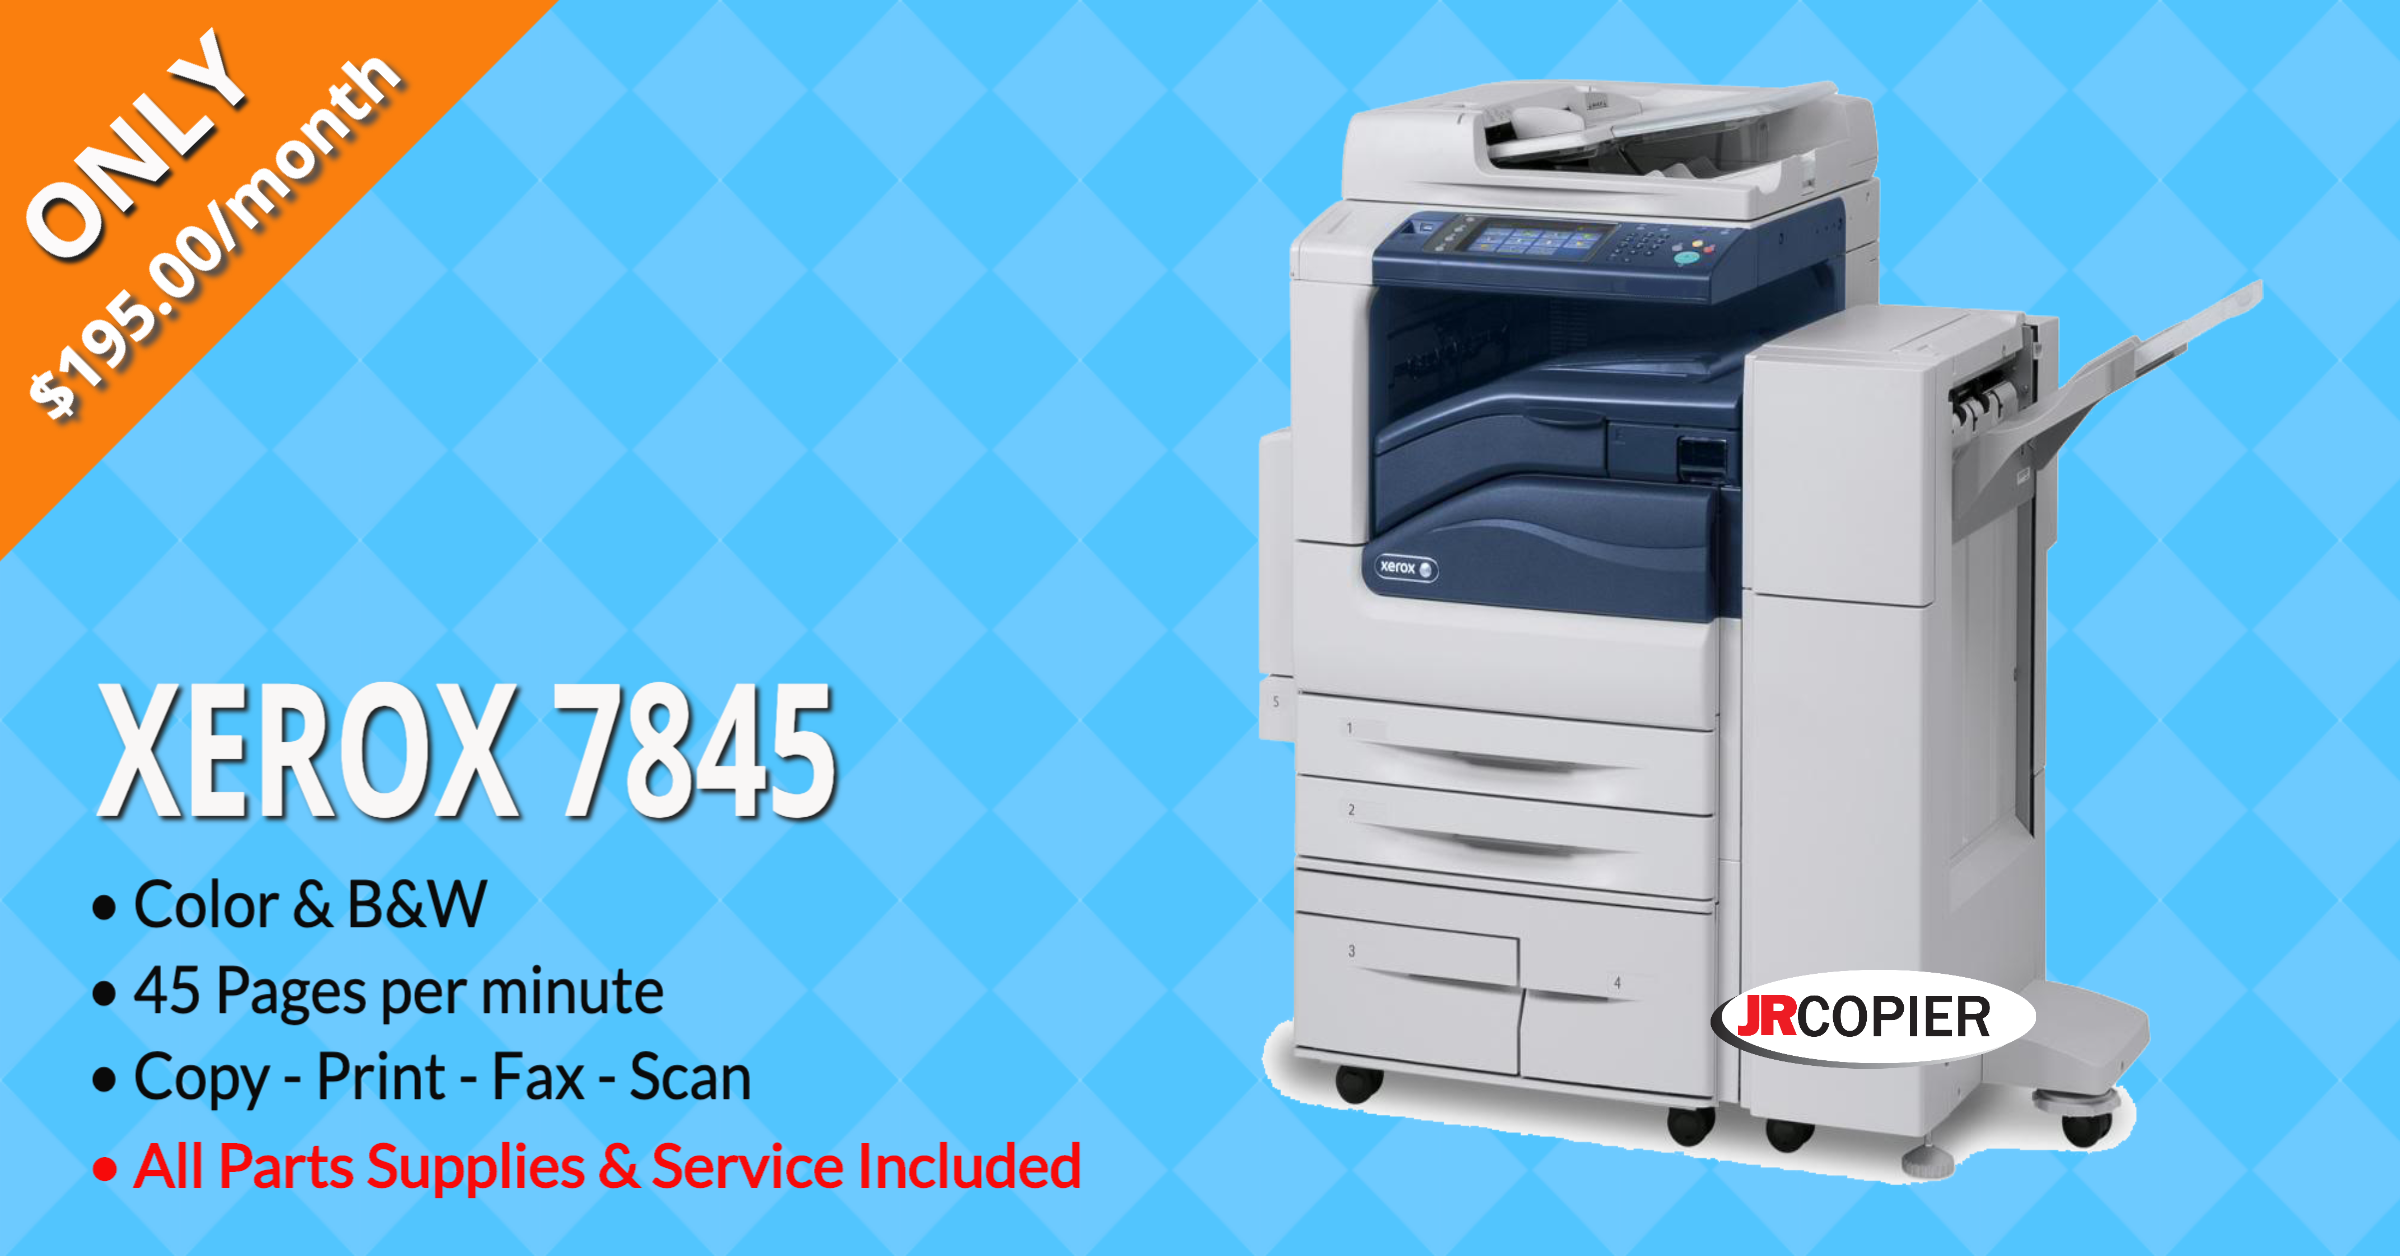 Color Copier 92329, 92344, 92371, 92392